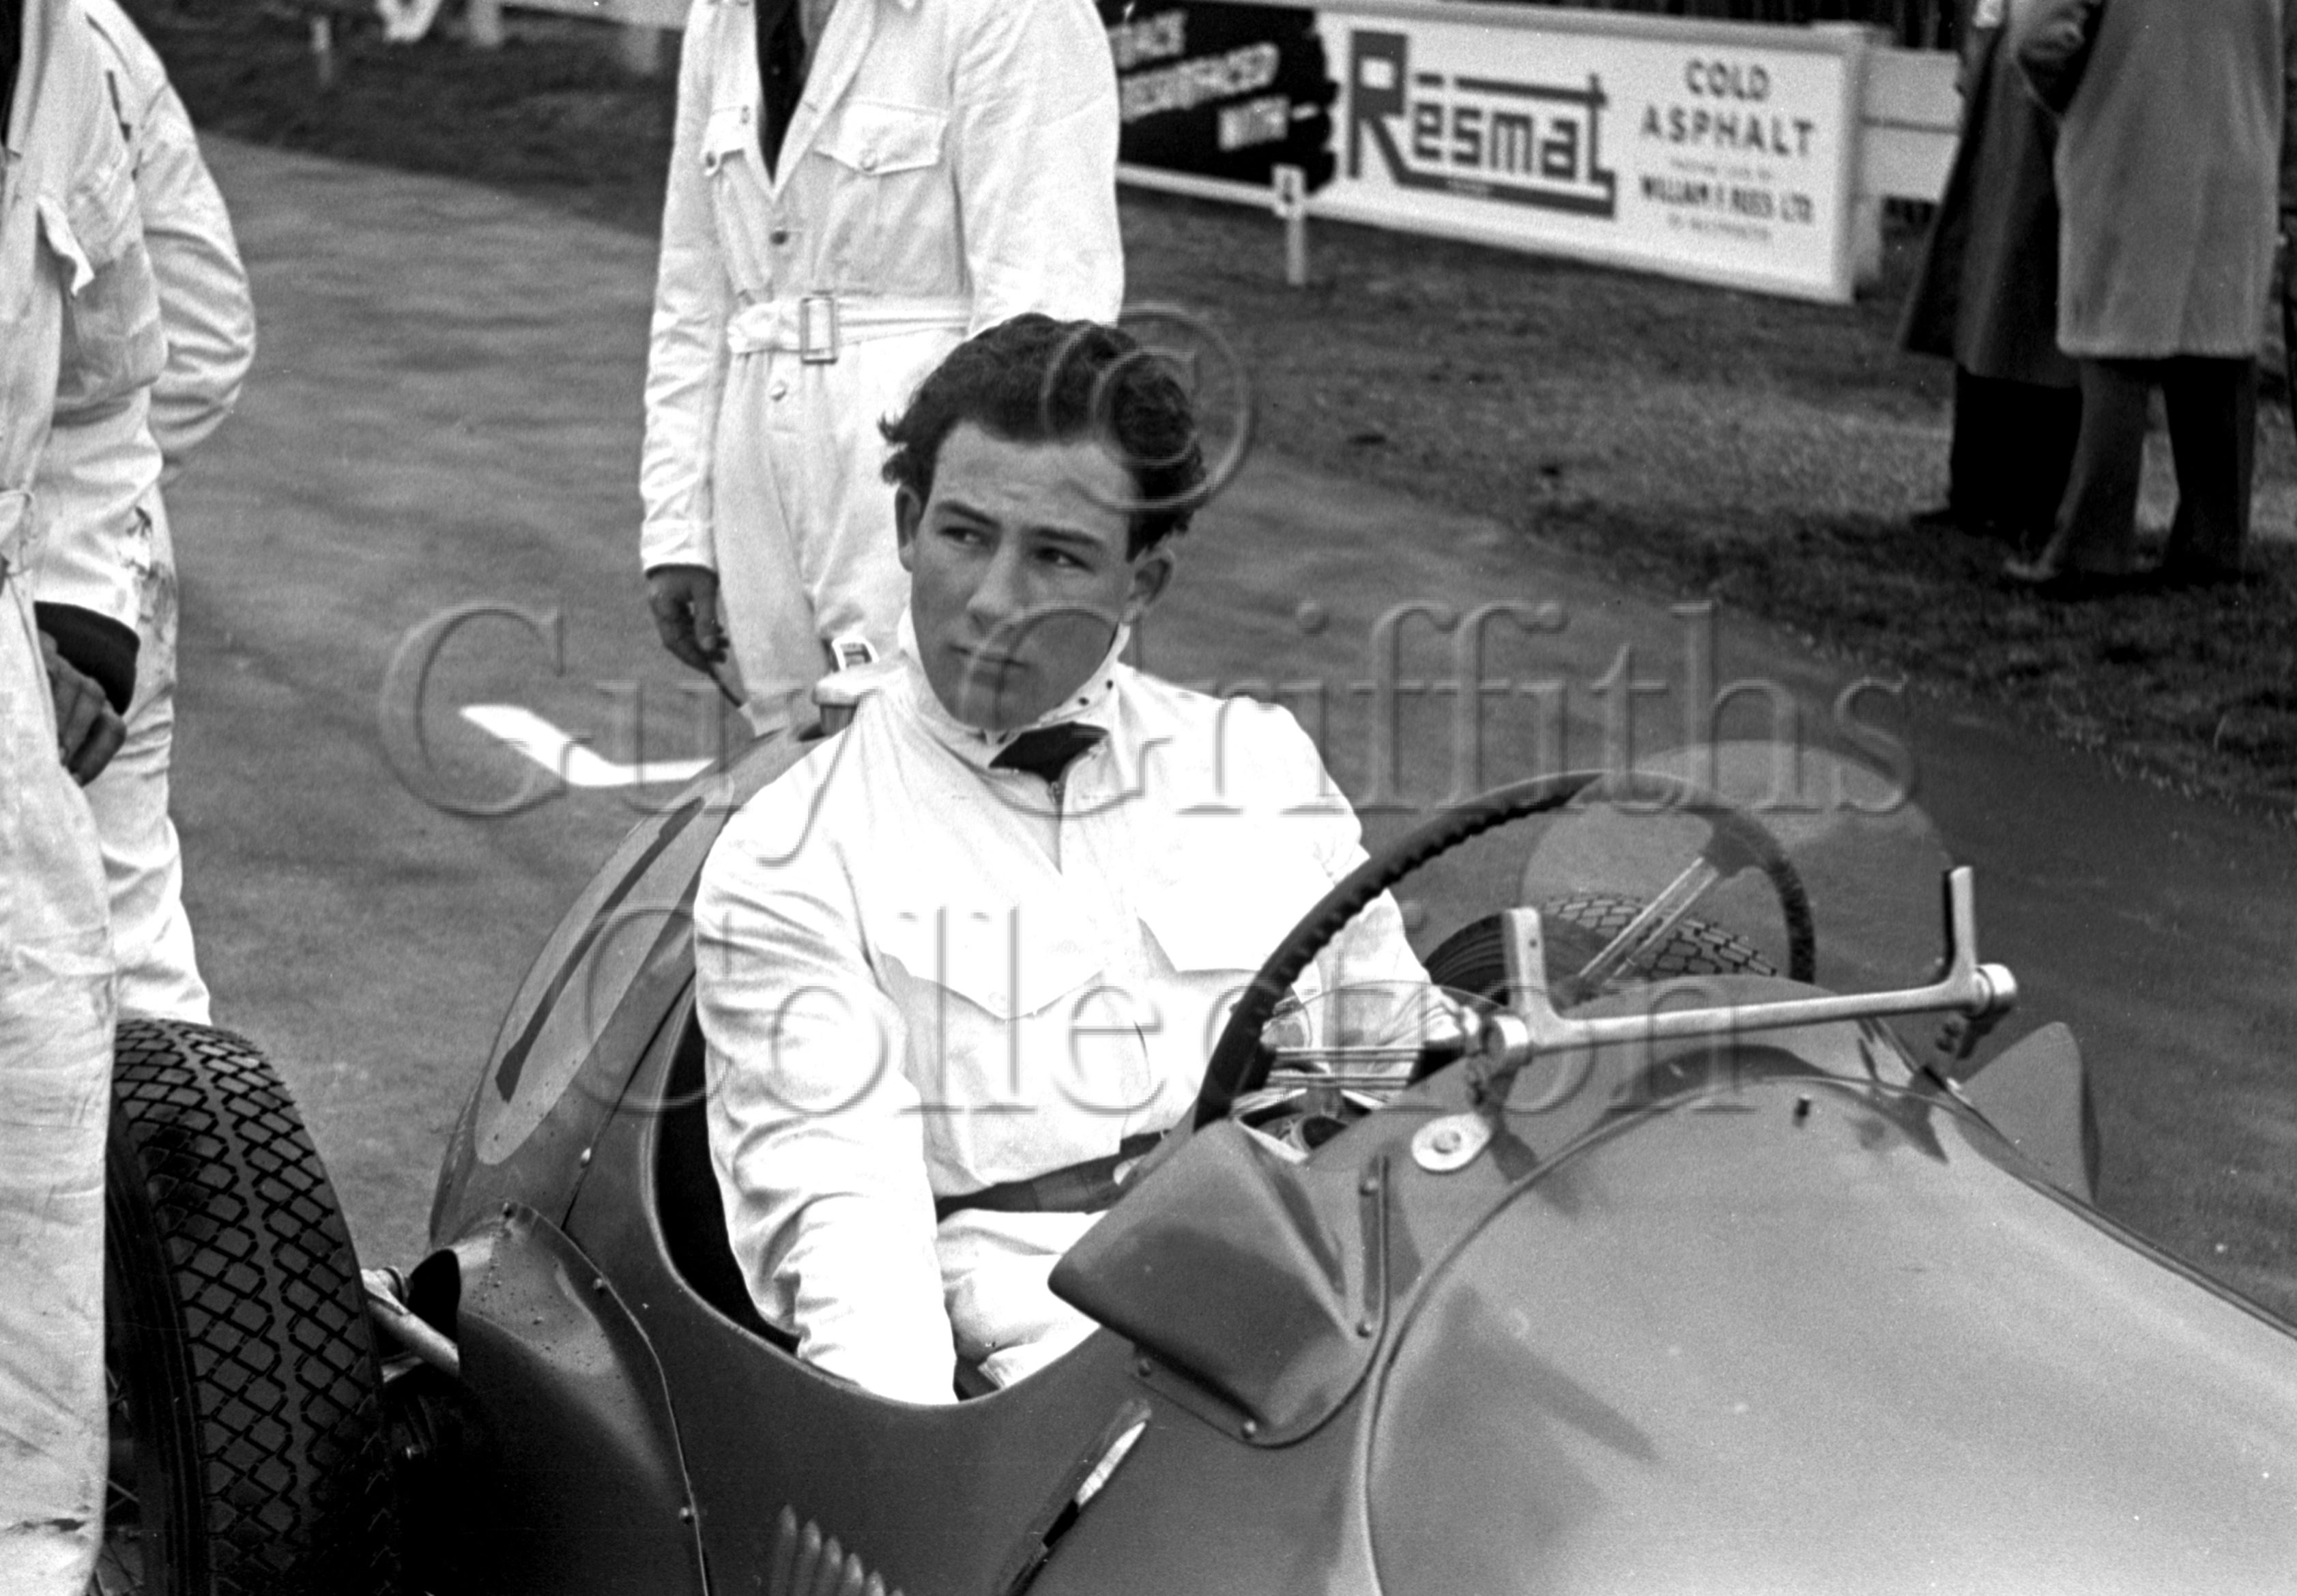 39-184–S-Moss–HWM–Goodwood–26-03-1951.jpg - The Guy Griffiths Collection